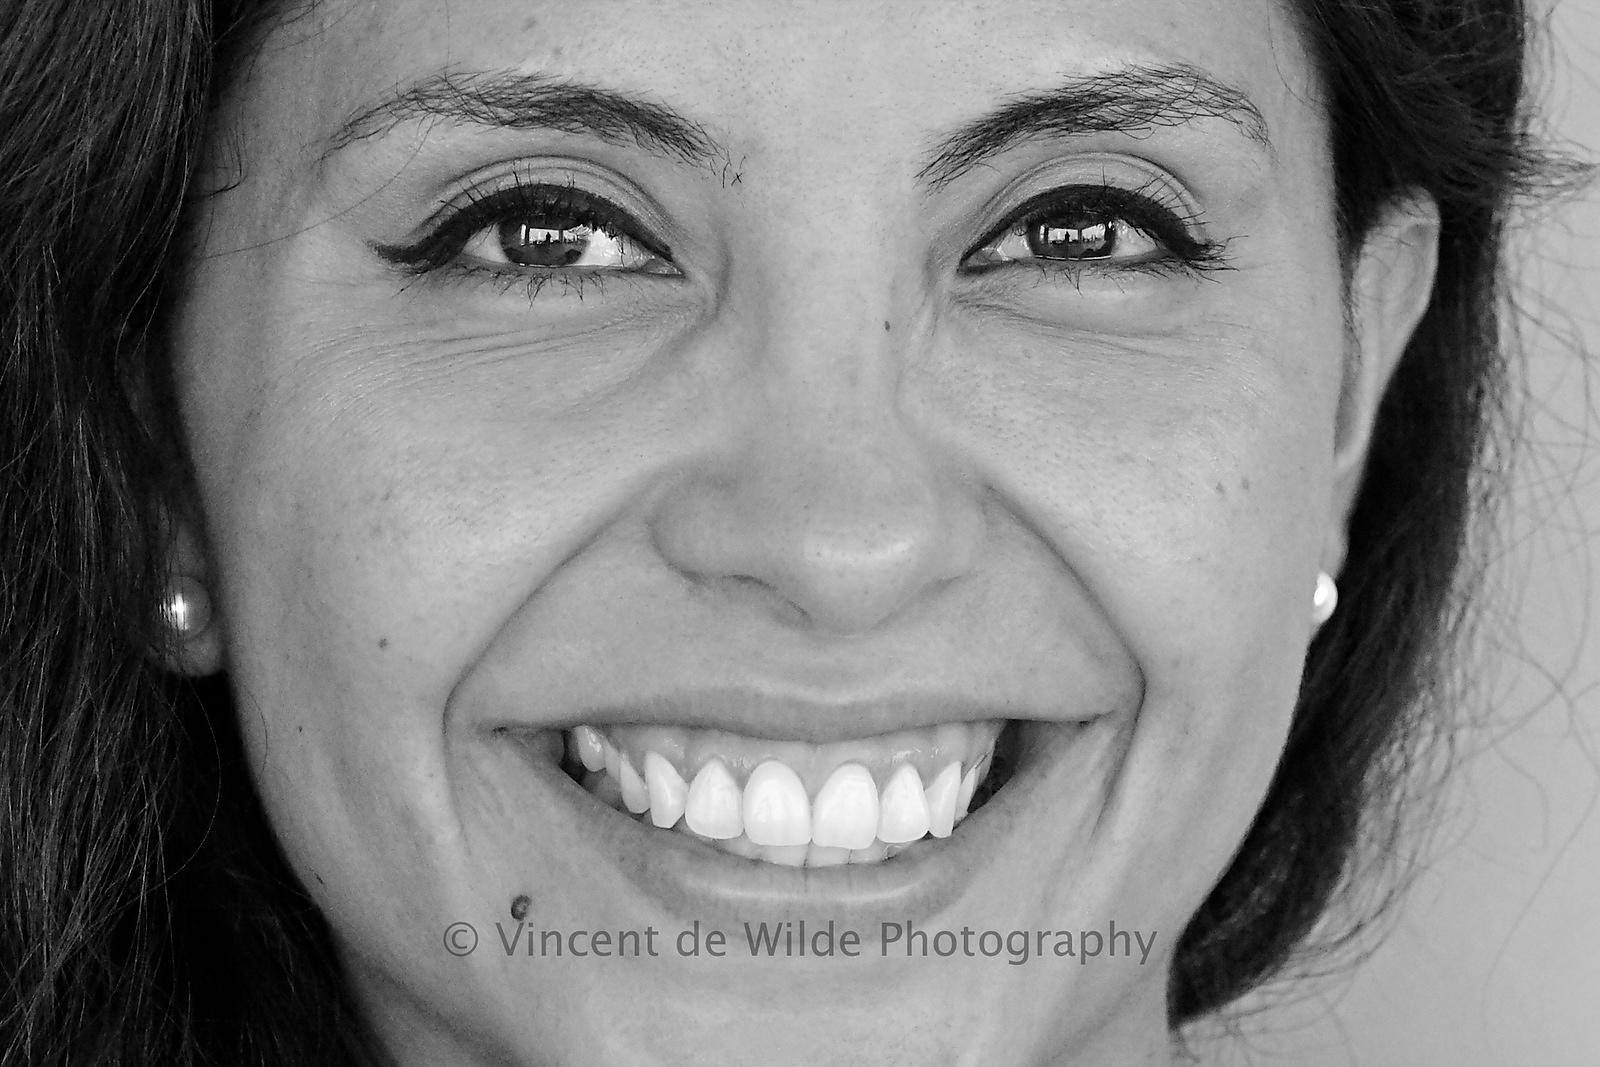 Pamela (Bolivie) - Moment de Joie / Moment of Joy